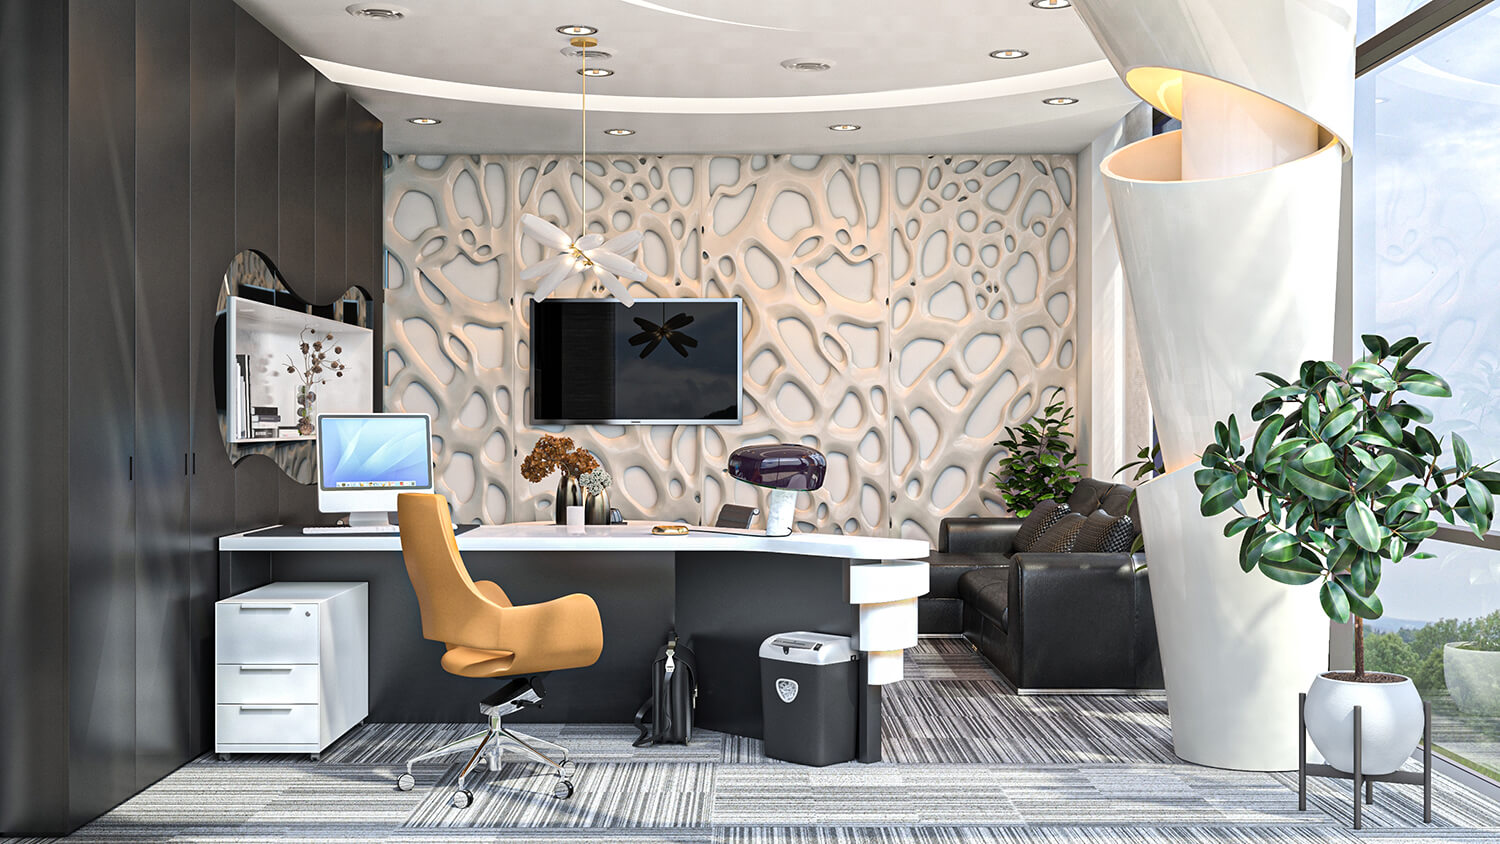 dizain-na-glaven-kaginet-v-office-sgrada-interior